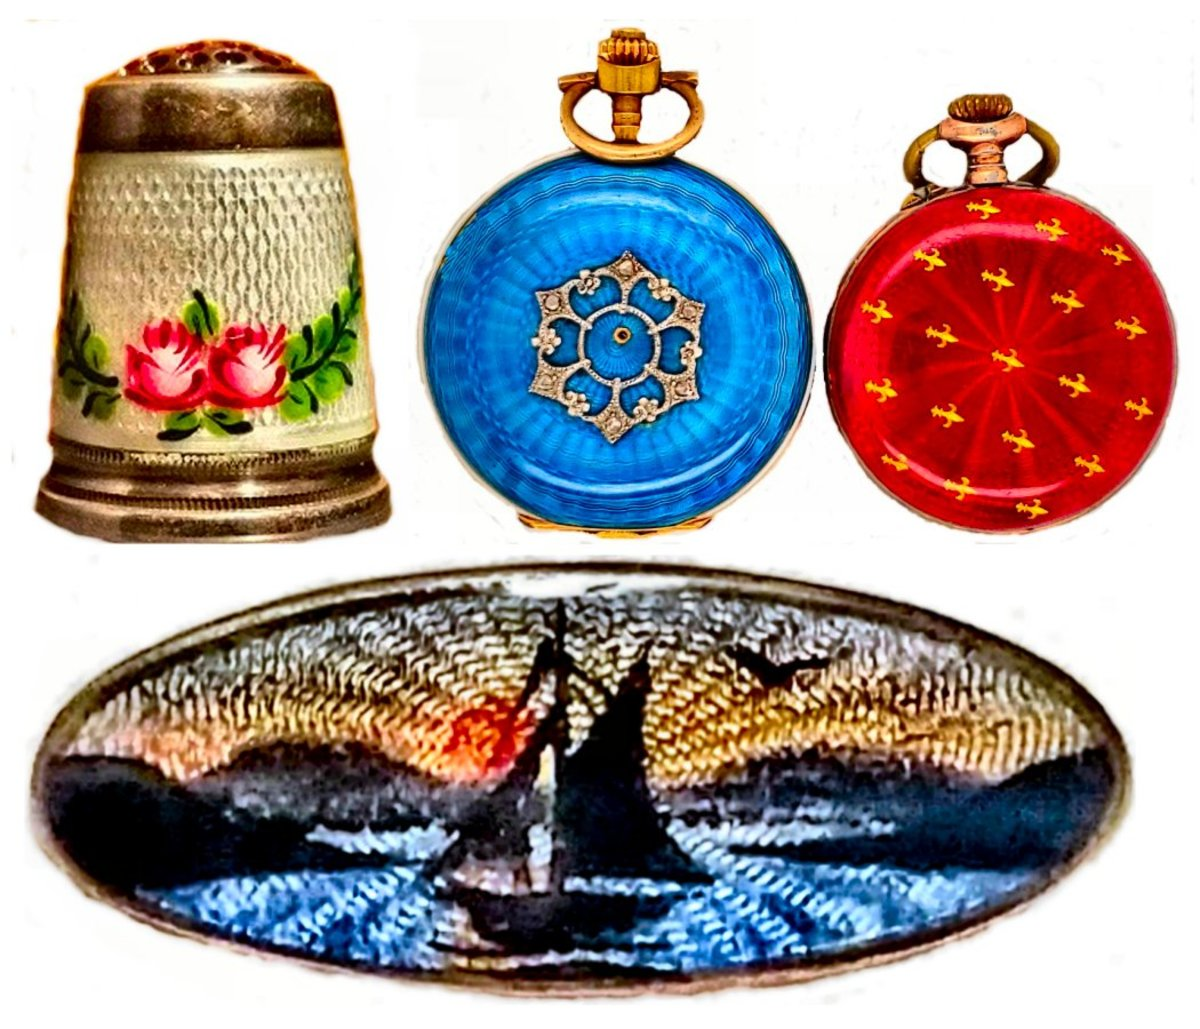 The Guilloché engraving can be readily seen beneath the translucent enamel on these items: sterling silver thimble with floral overpainting, 14kt gold ladies watch in royal blue, lady's watch in red with gilt fleur de lis, and an Albert Scharning enamel brooch depicting a sailboat during sunrise. Note how the Guilloché engraving mimics the rays of the sun and waves in the water.